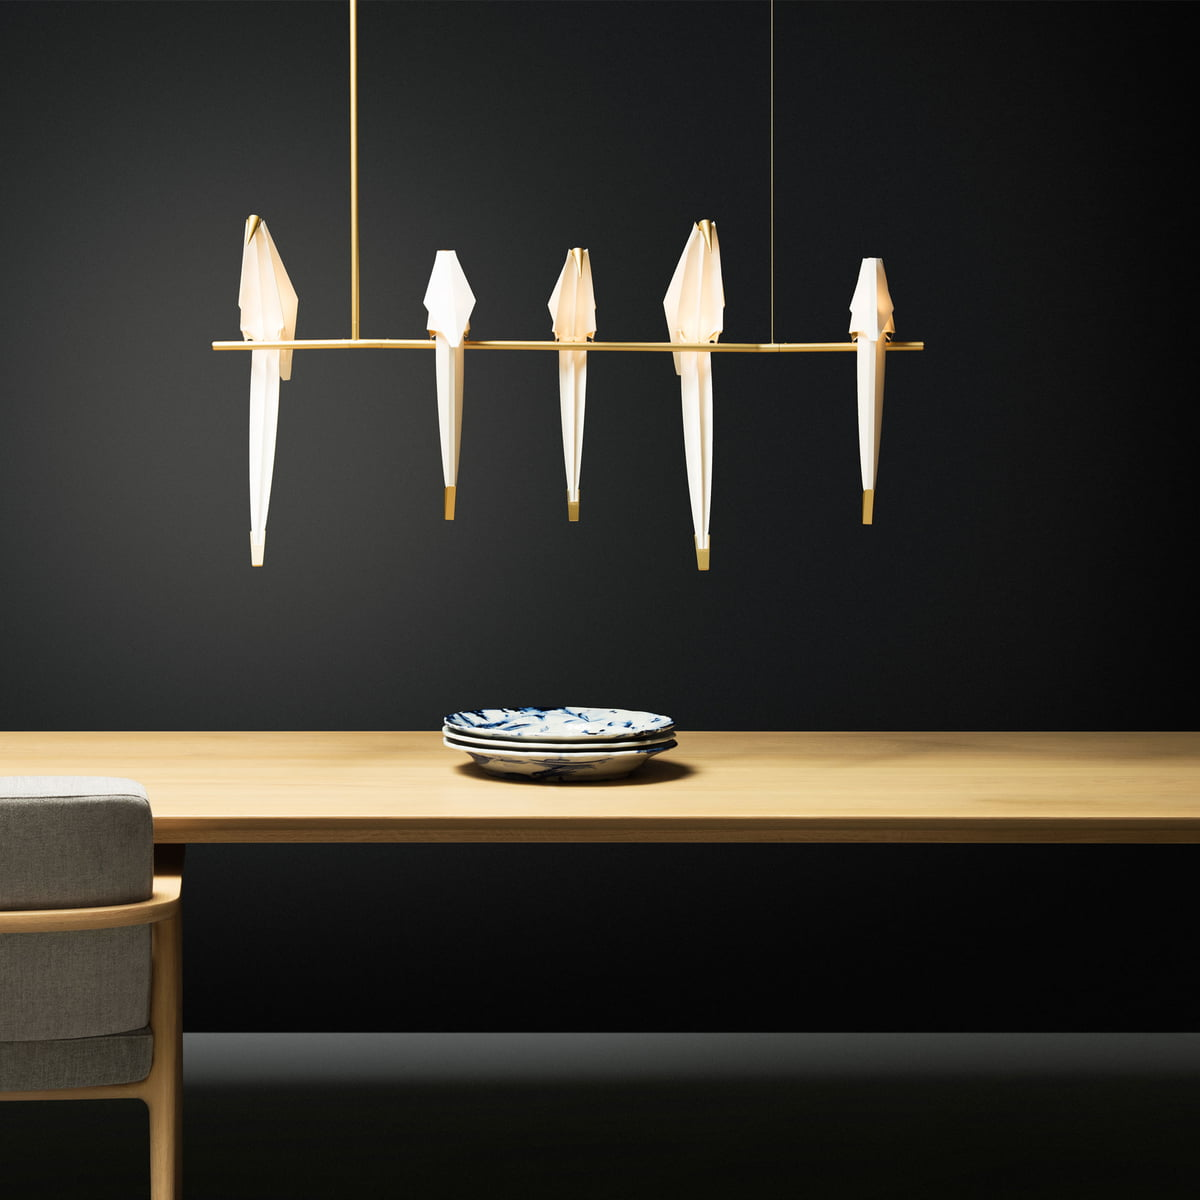 Moooi Perch Light Branch LED Pendelleuchte, Messing weiß